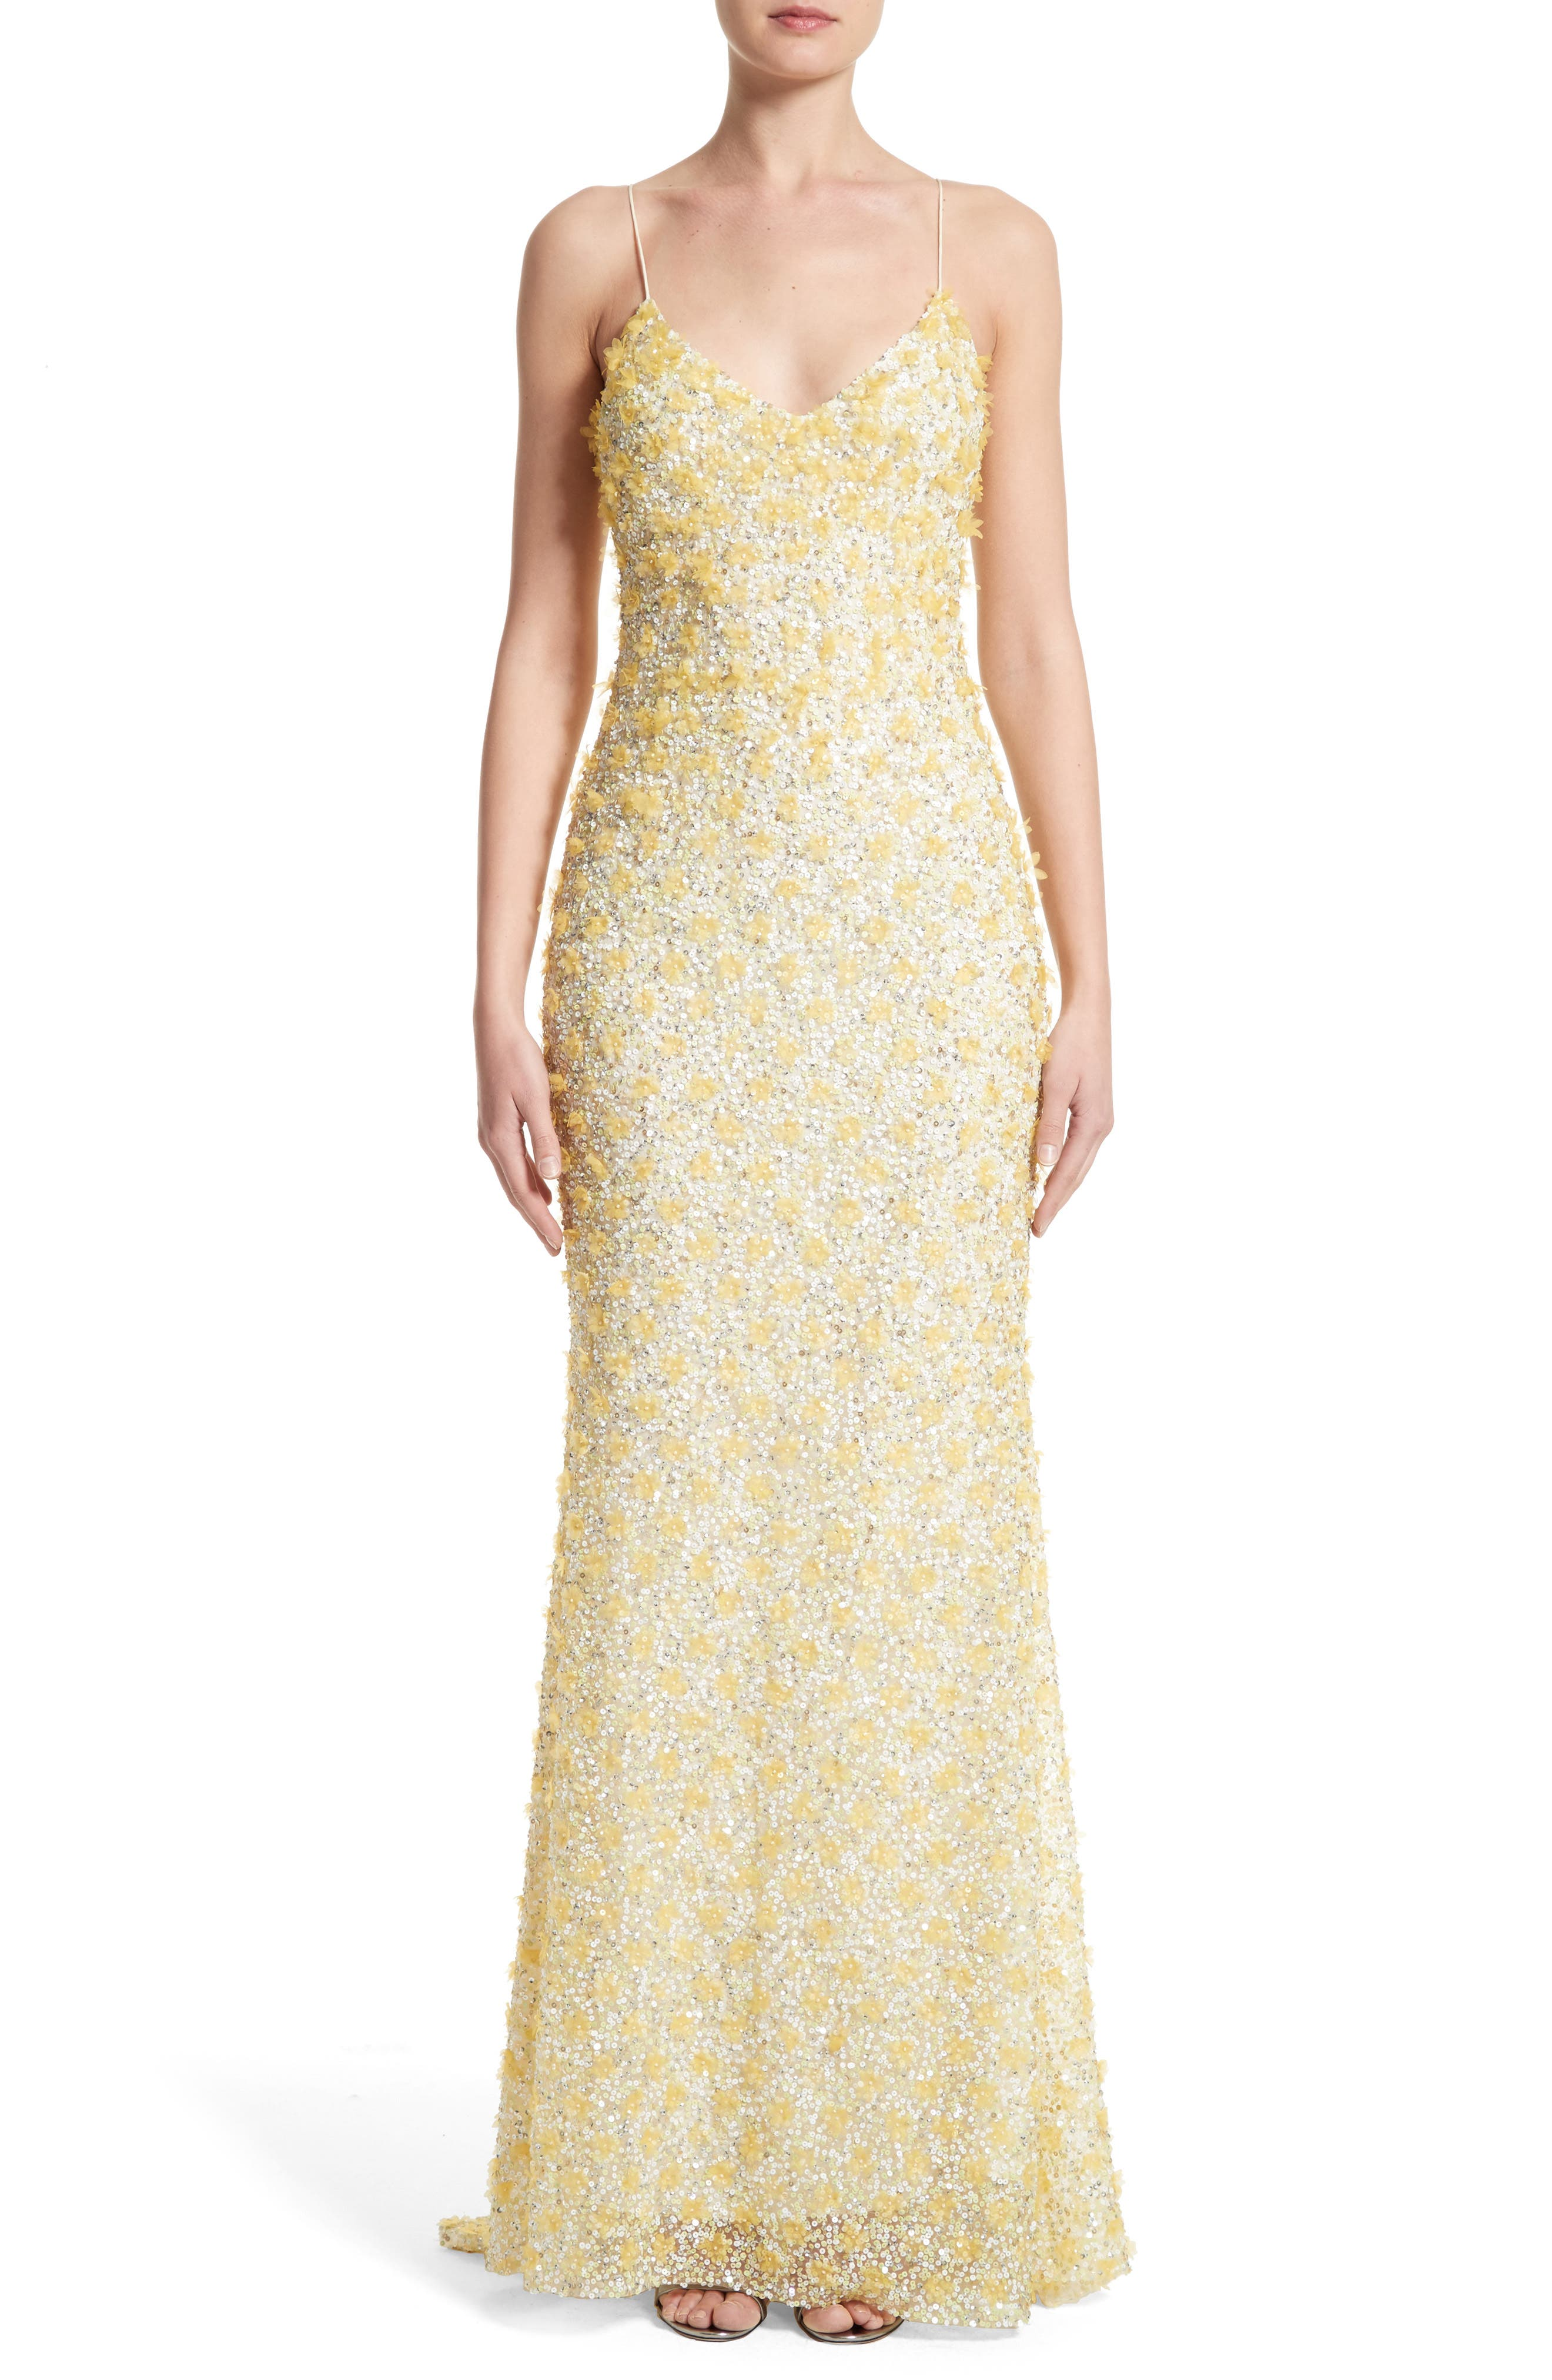 Badgley Mischka Couture Embellished Gown,                         Main,                         color, 700